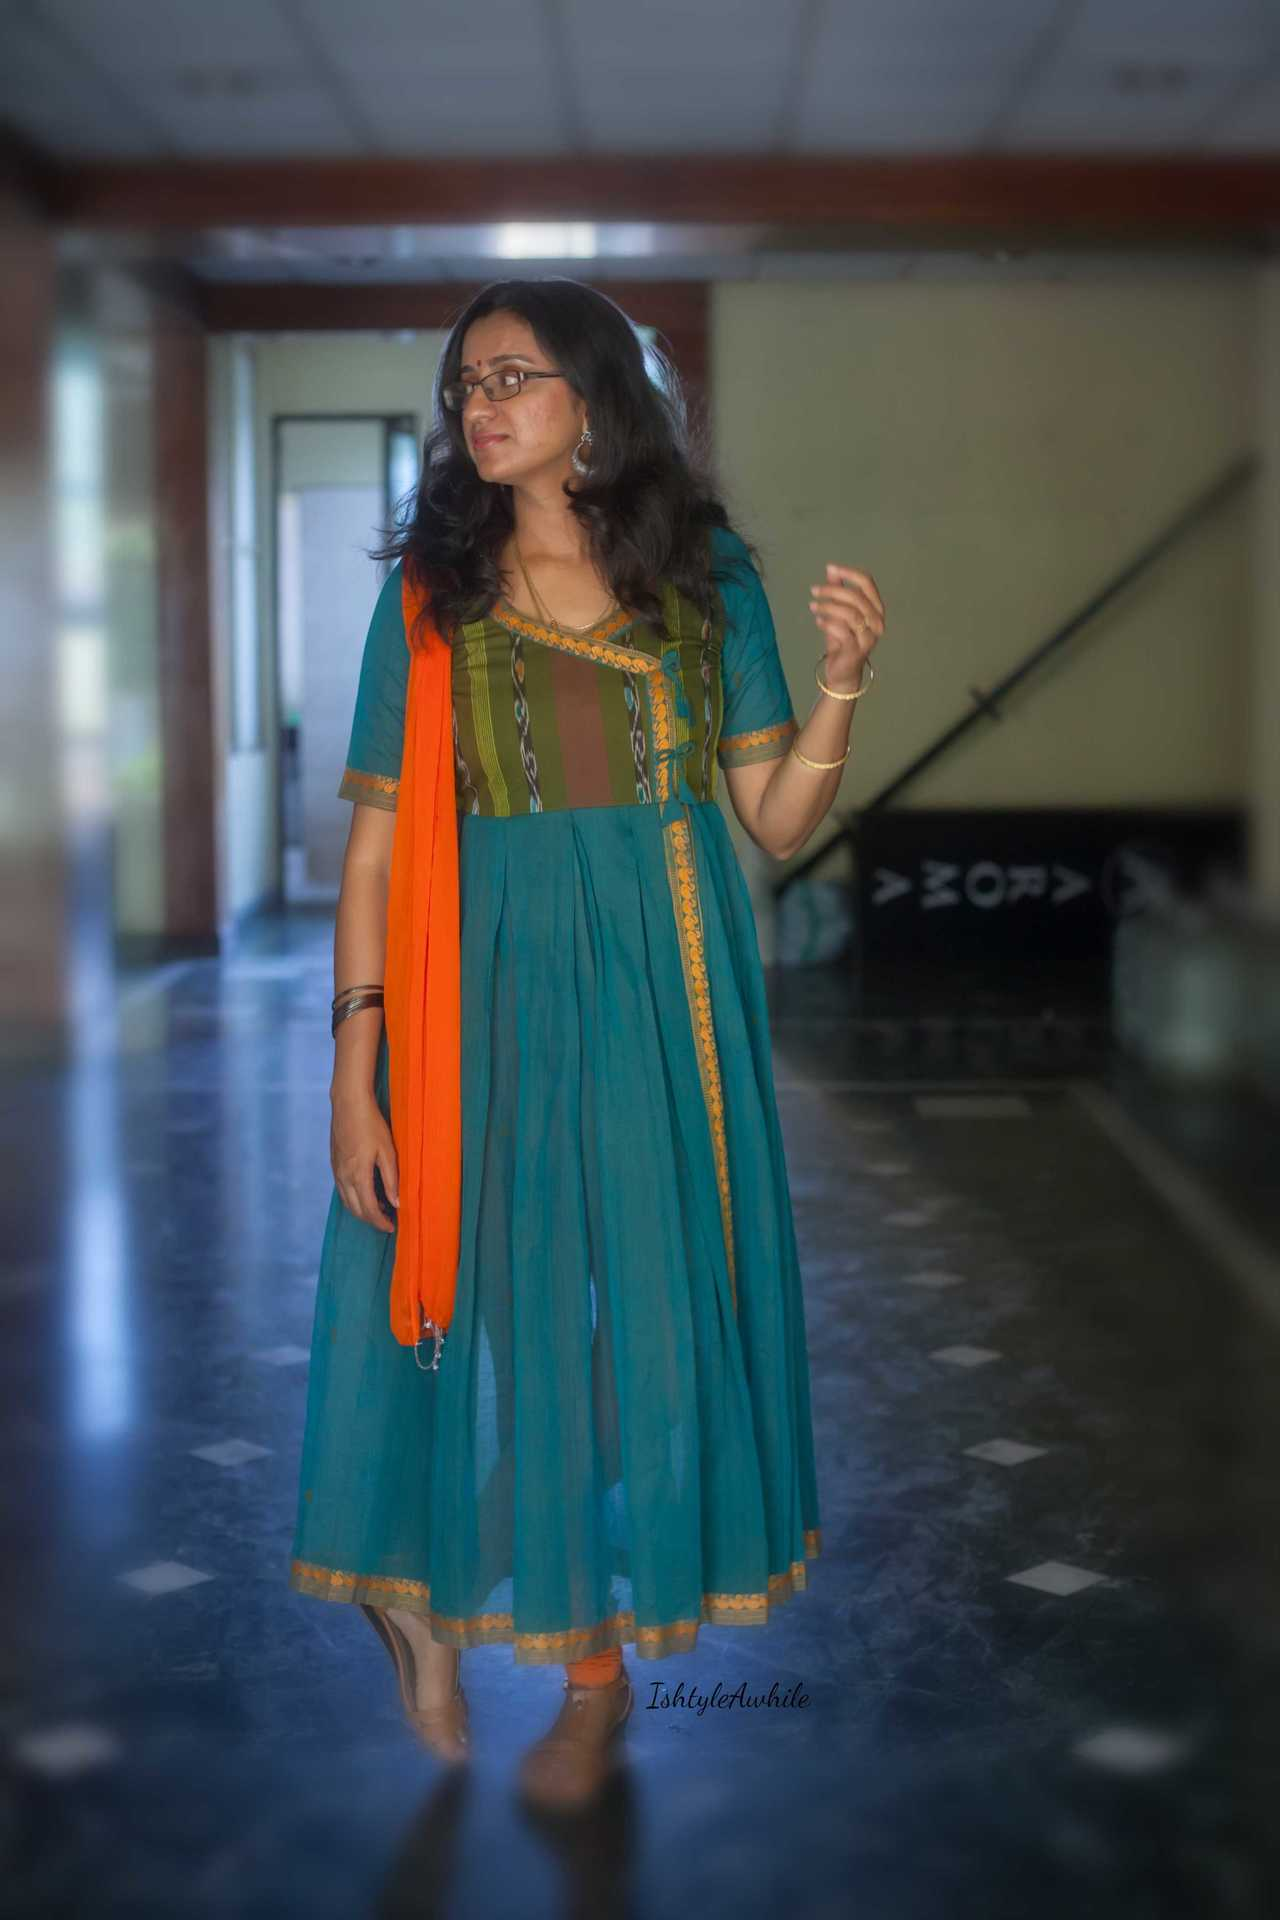 IshtyleAwhile - A Chennai based Indian Fashion Blog - chennai ethnic fashion blogger